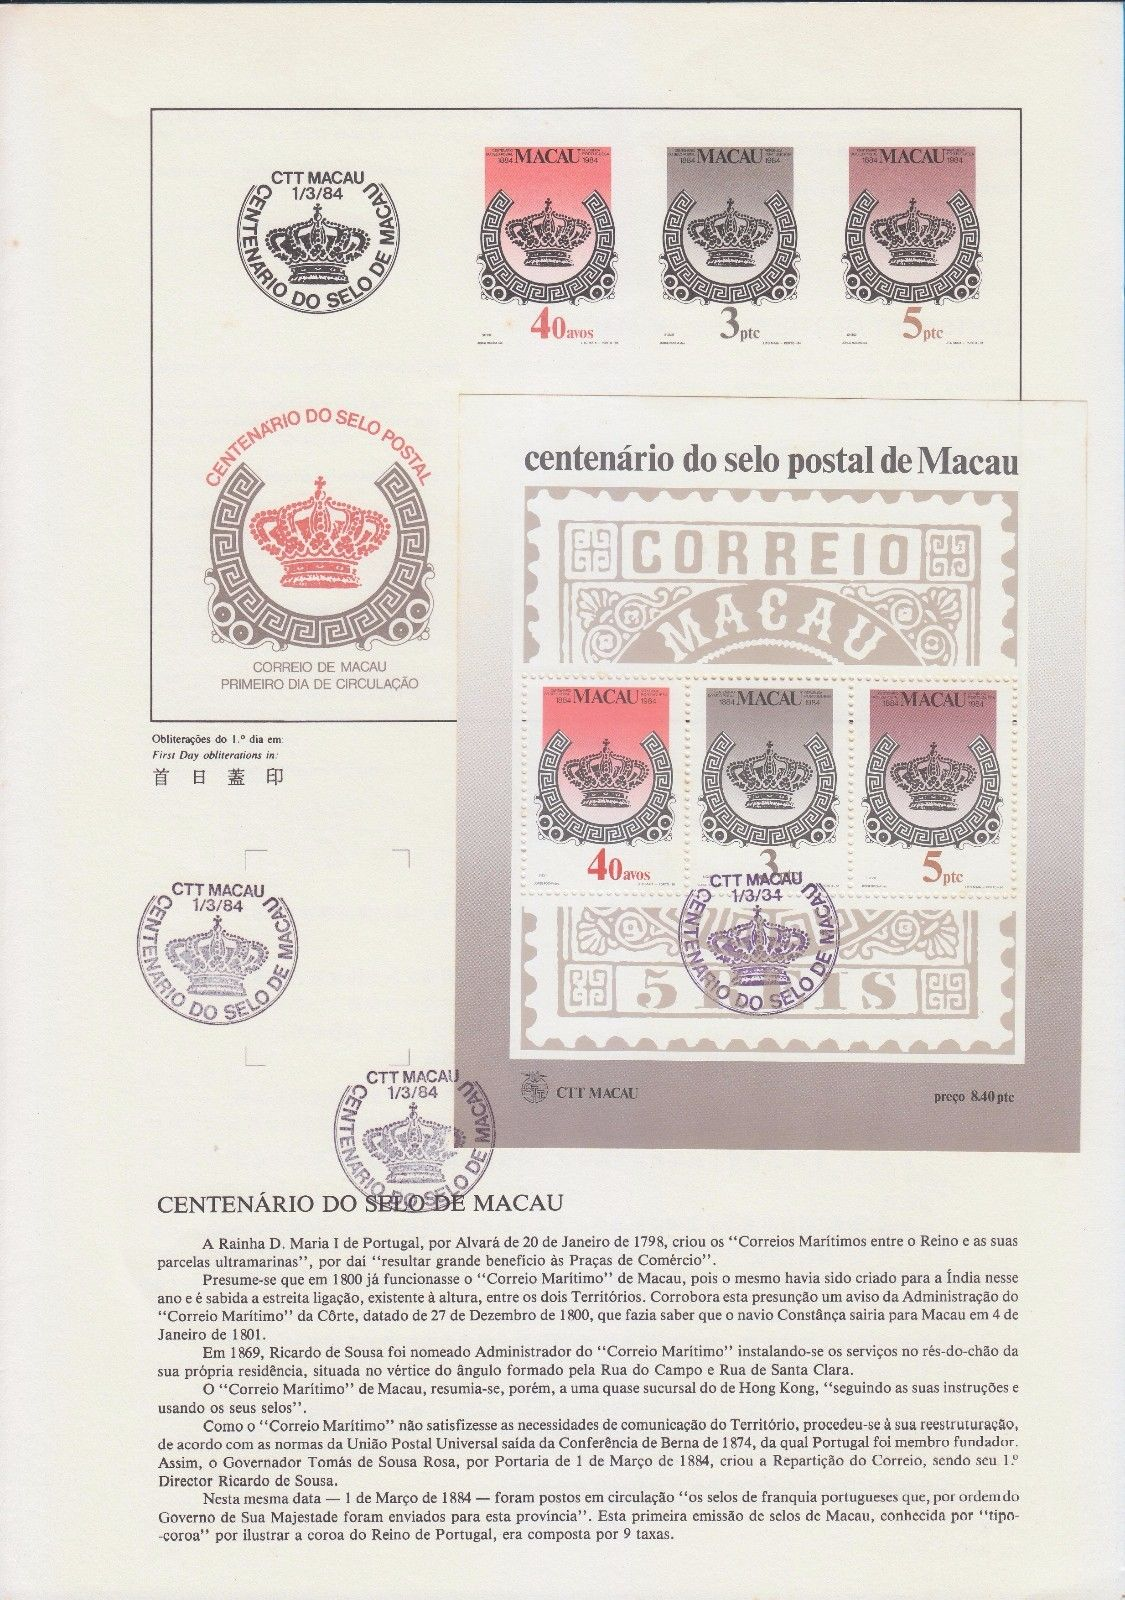 Macao 1984 Centenary of Macao Postage Stamps IOPb.jpg